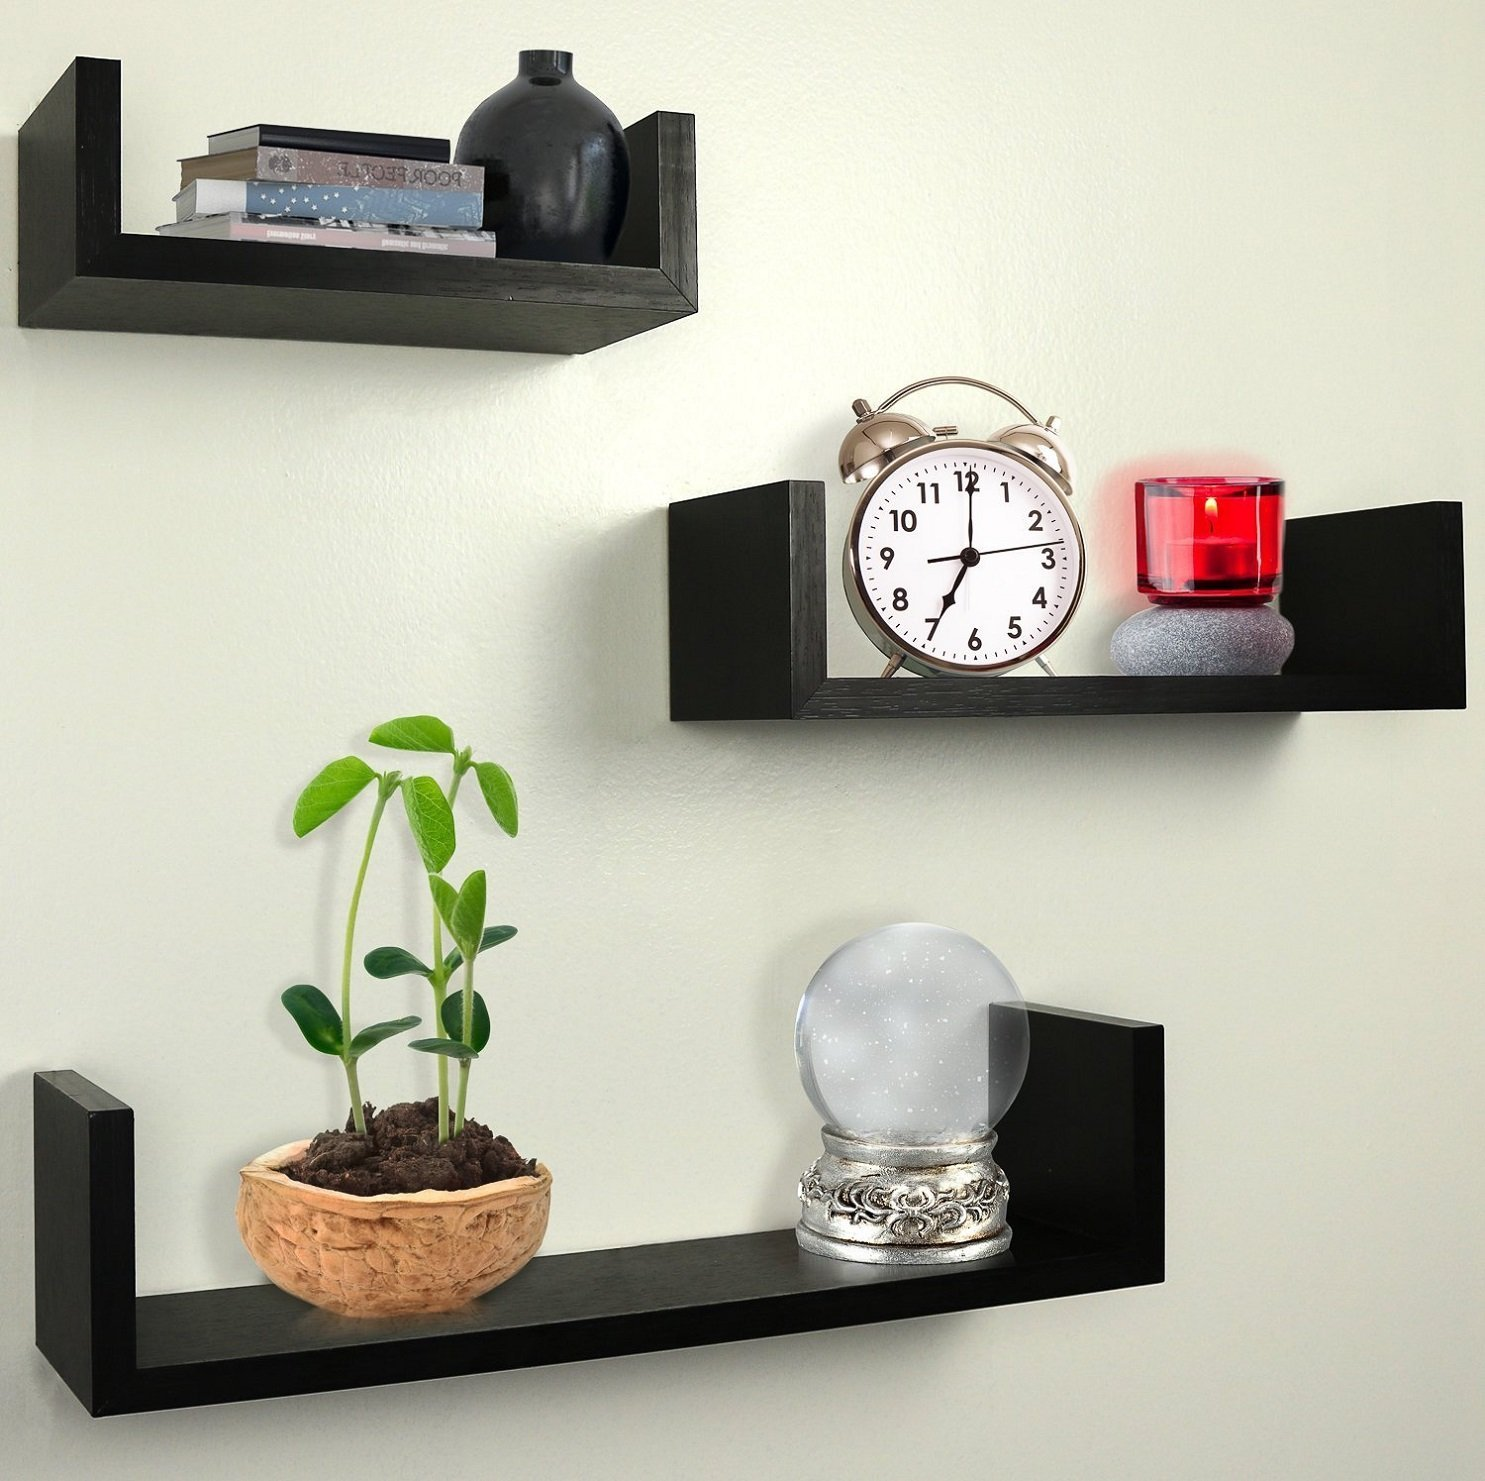 Wall Book Shelfs Set Of 3 Floating U Shelves Espresso Finish Home Decor